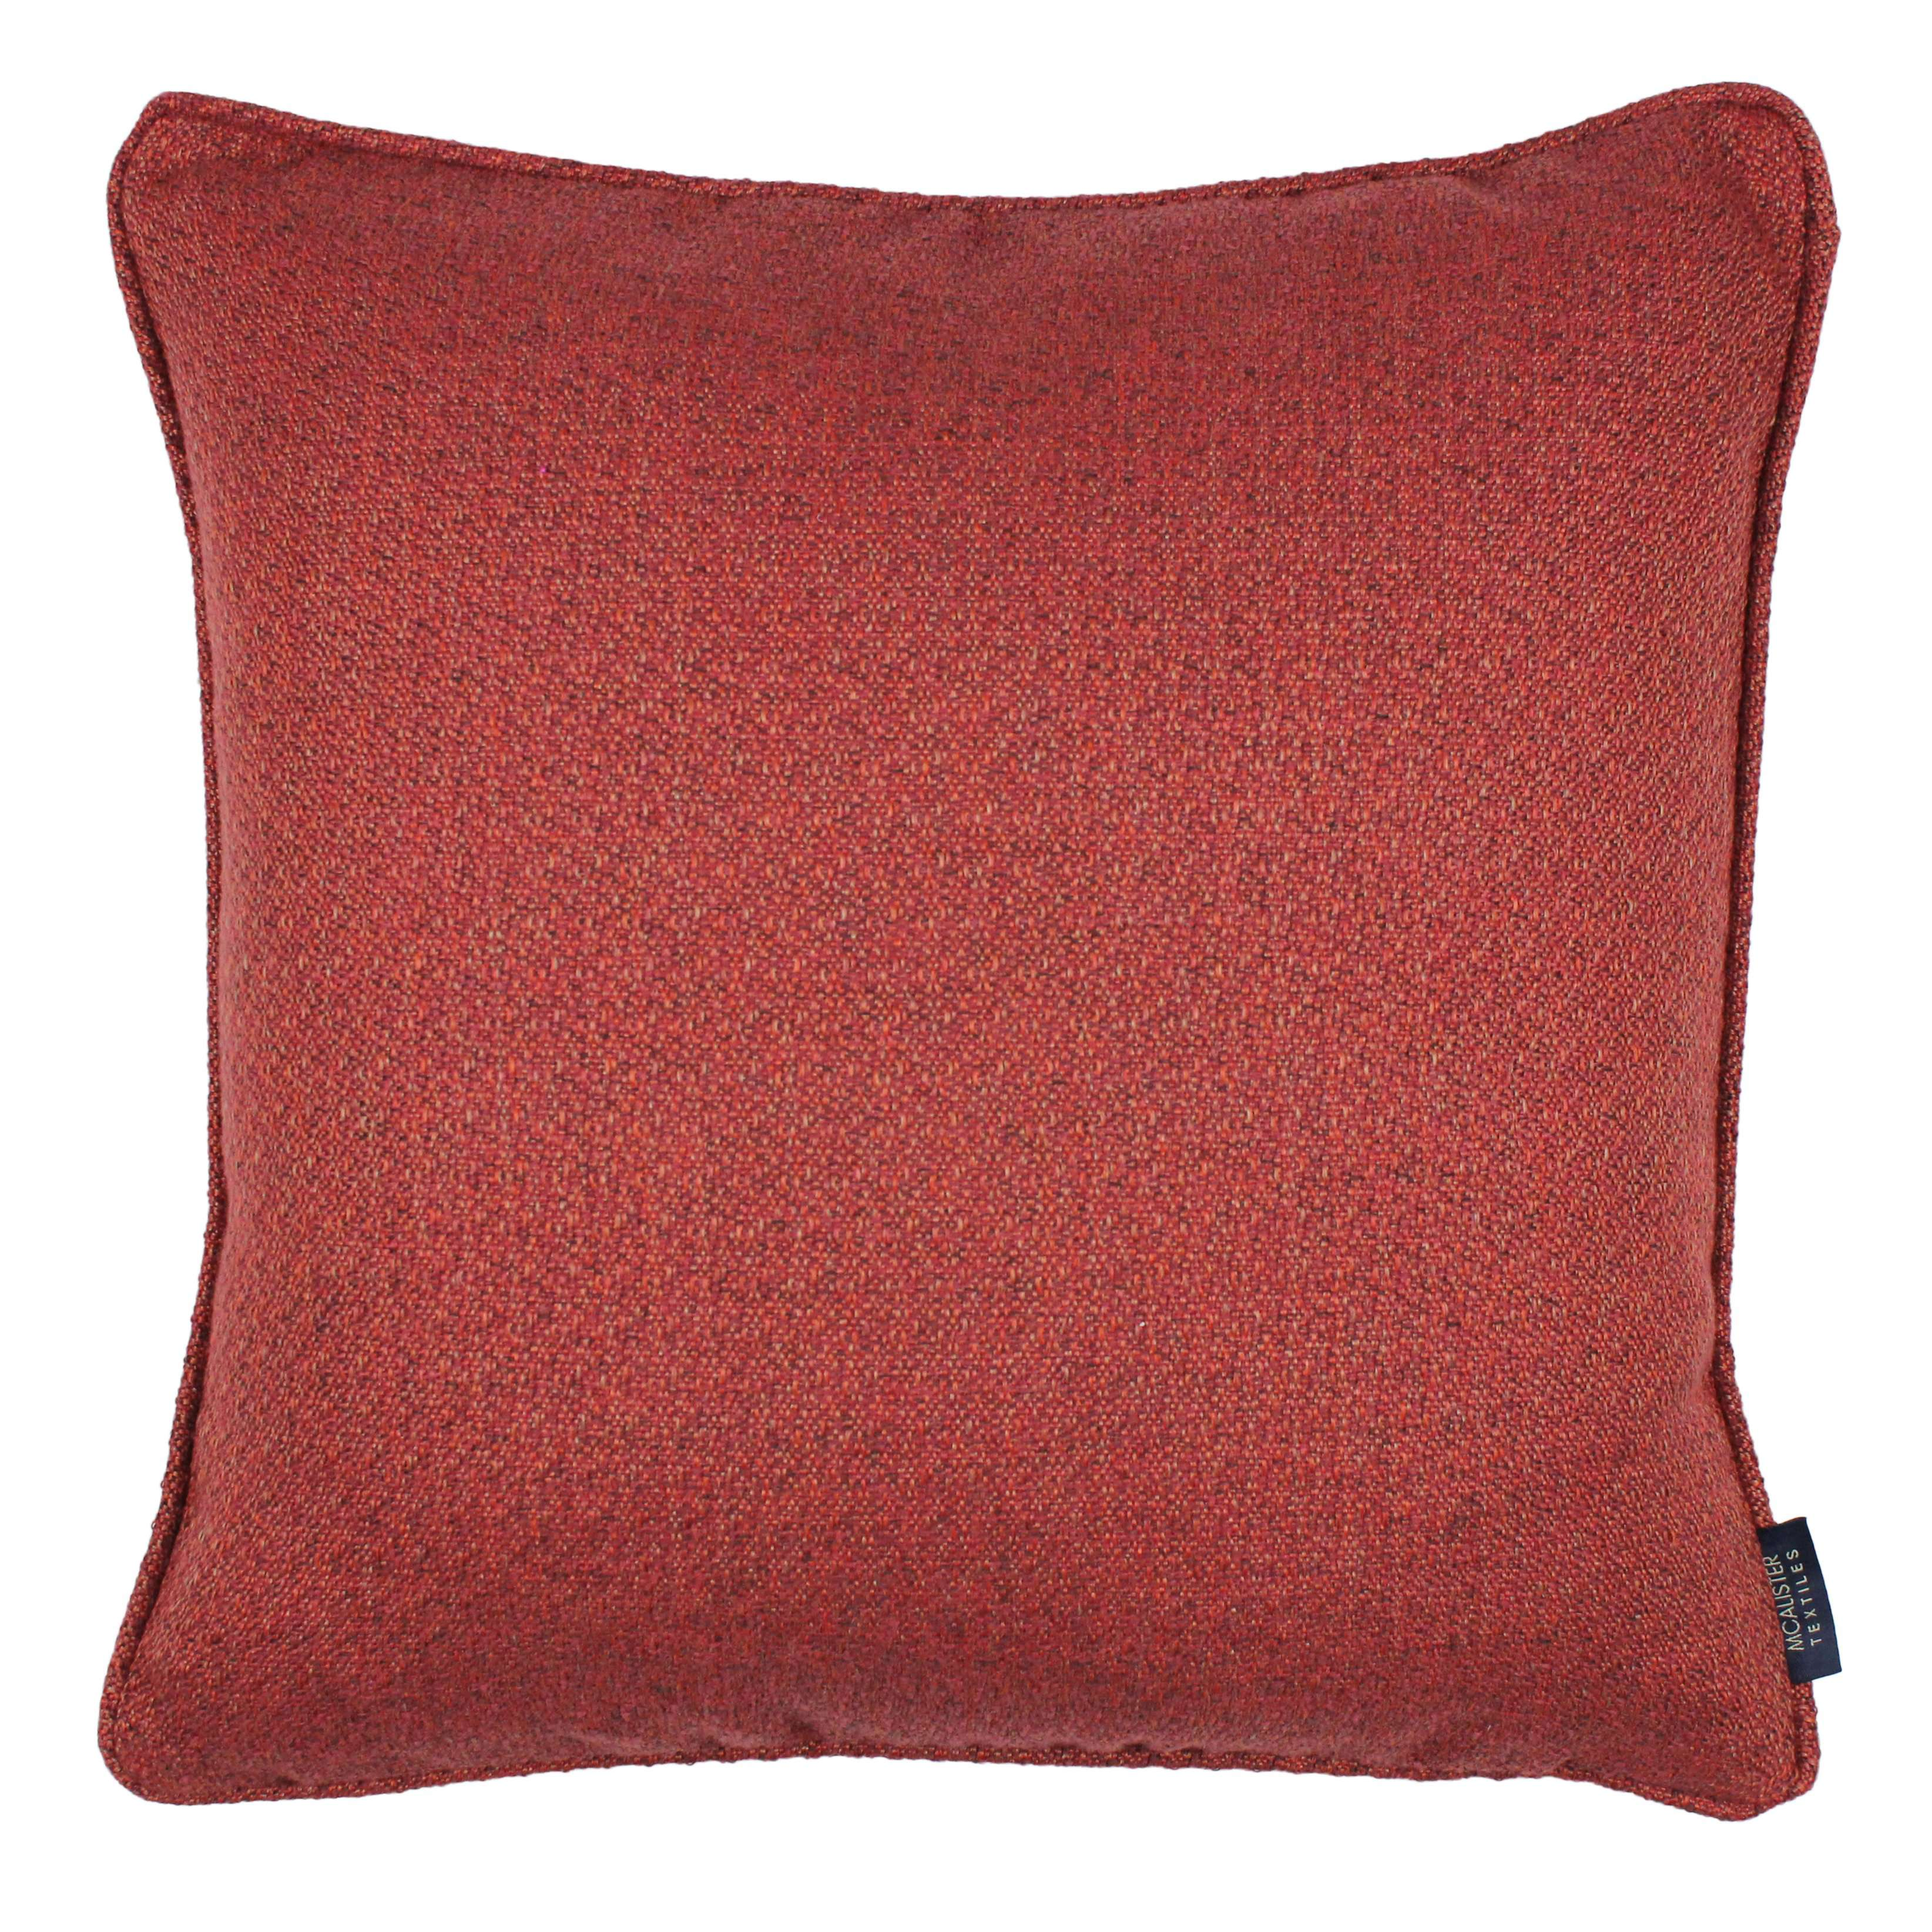 McAlister Textiles Highlands Red Textured Plain Cushion Cushions and Covers Cover Only 43cm x 43cm